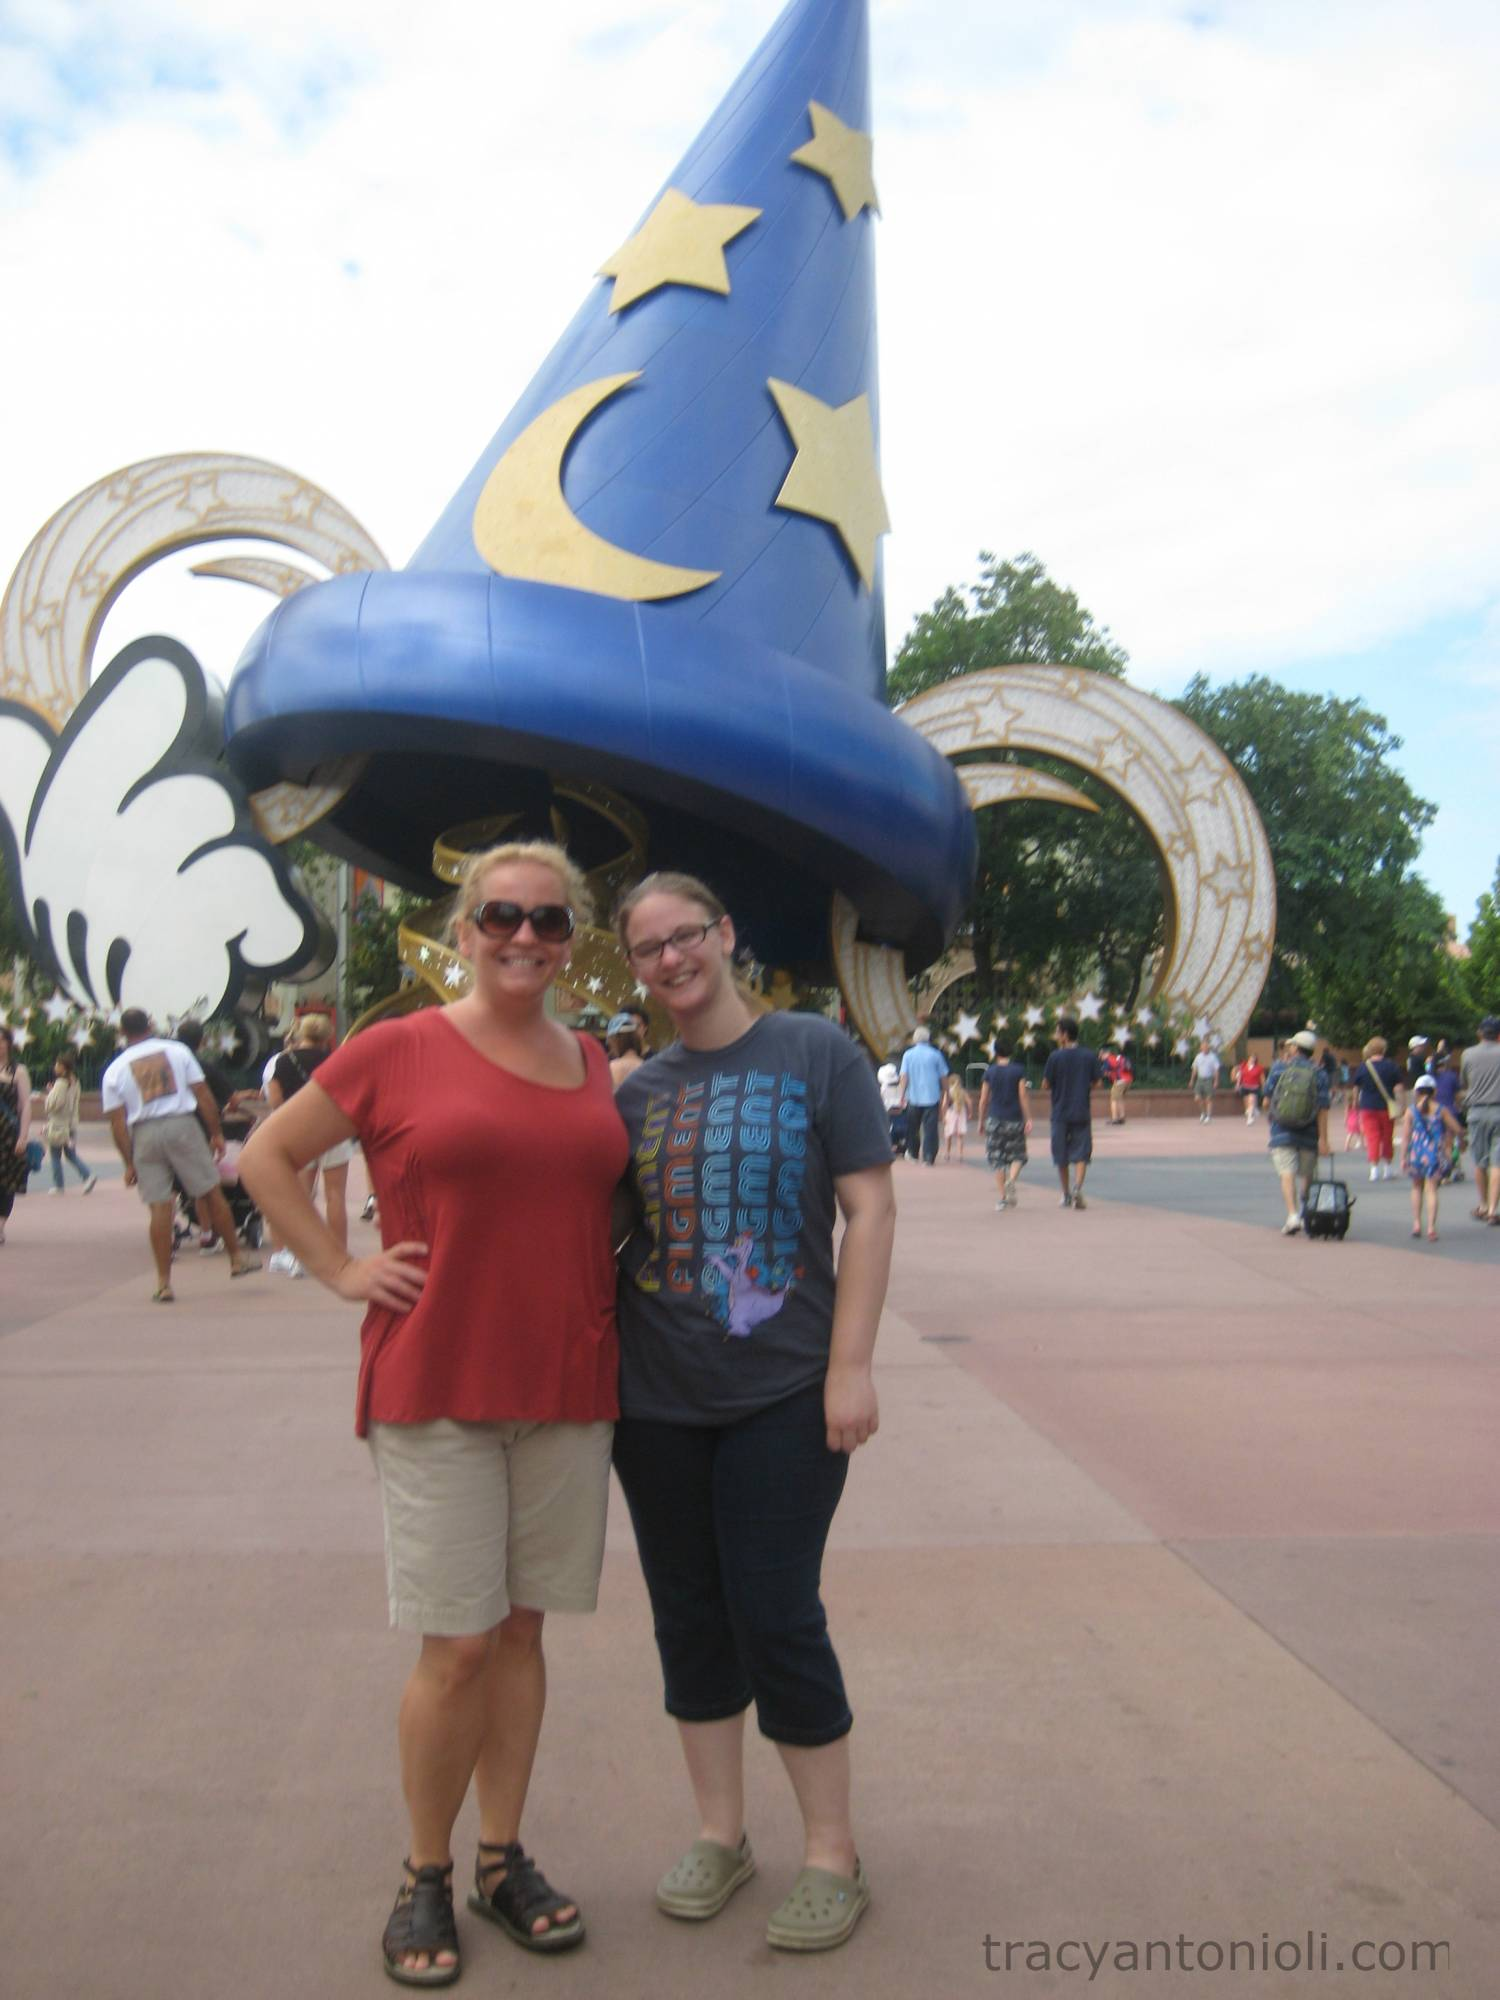 Learn more about Walt Disney World and yourself when you travel with a friend |PassPorter.com